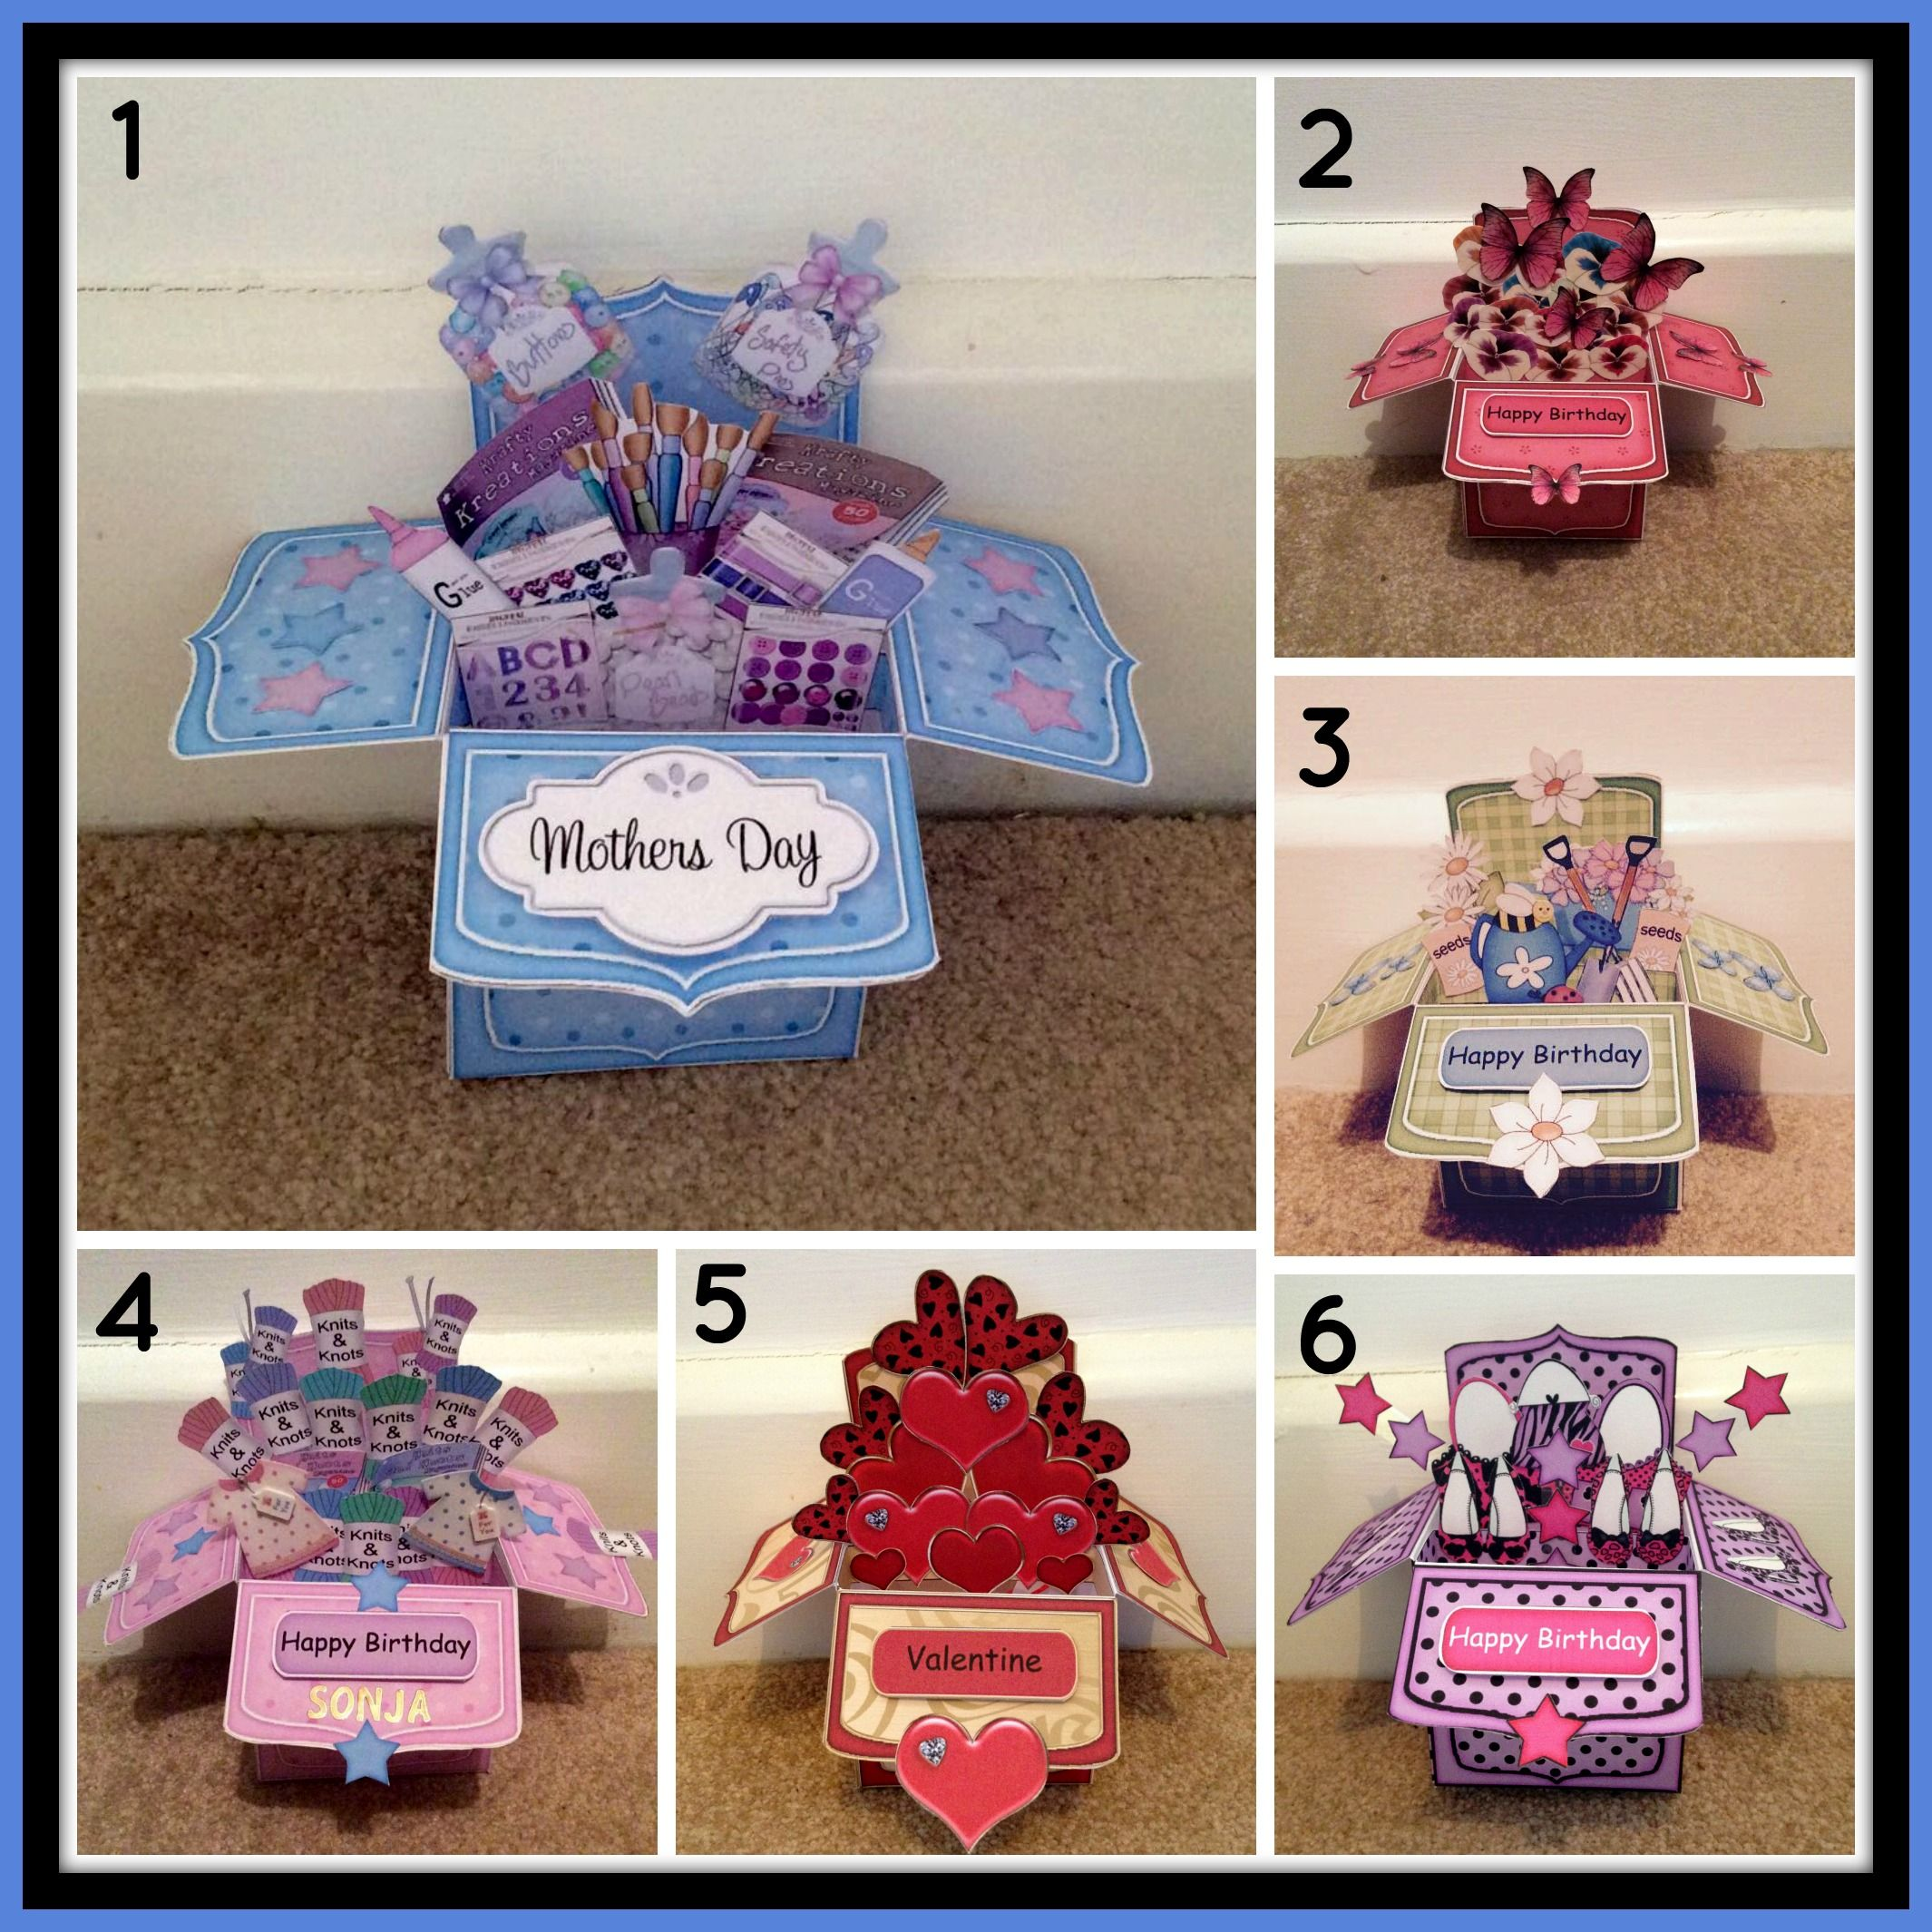 Purchase from facebooktheblenheimcardandgiftcompany